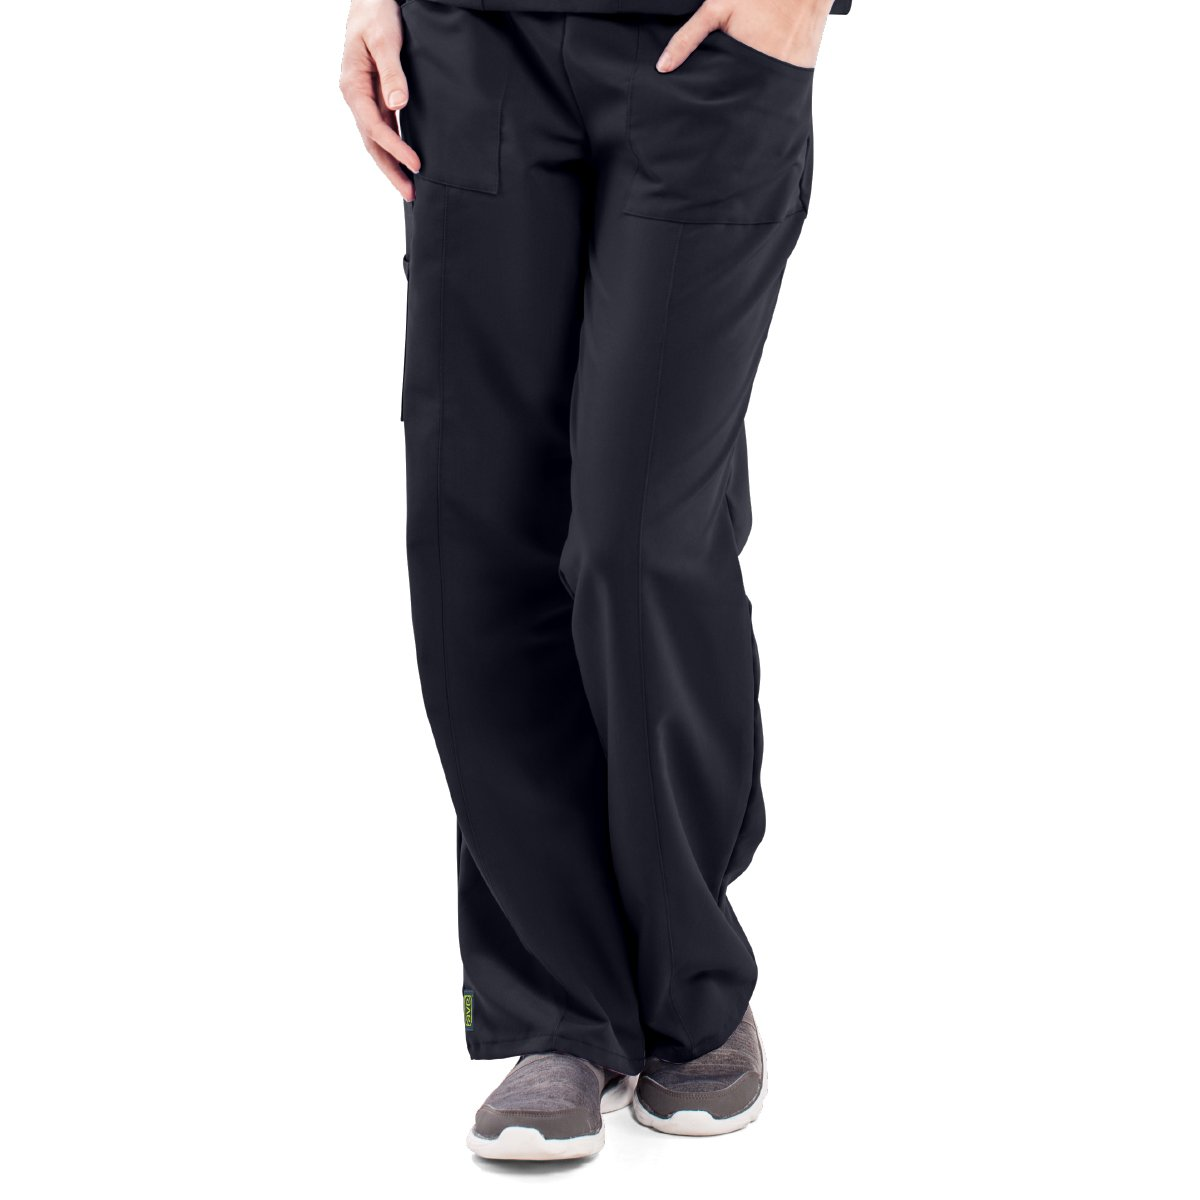 ave Women's Medical Scrub Pants, Pacific ave, Slimming Straight Leg Style Scrub Pant, Cargo Pockets, Great for Nurses, Black, 2X-Large Tall